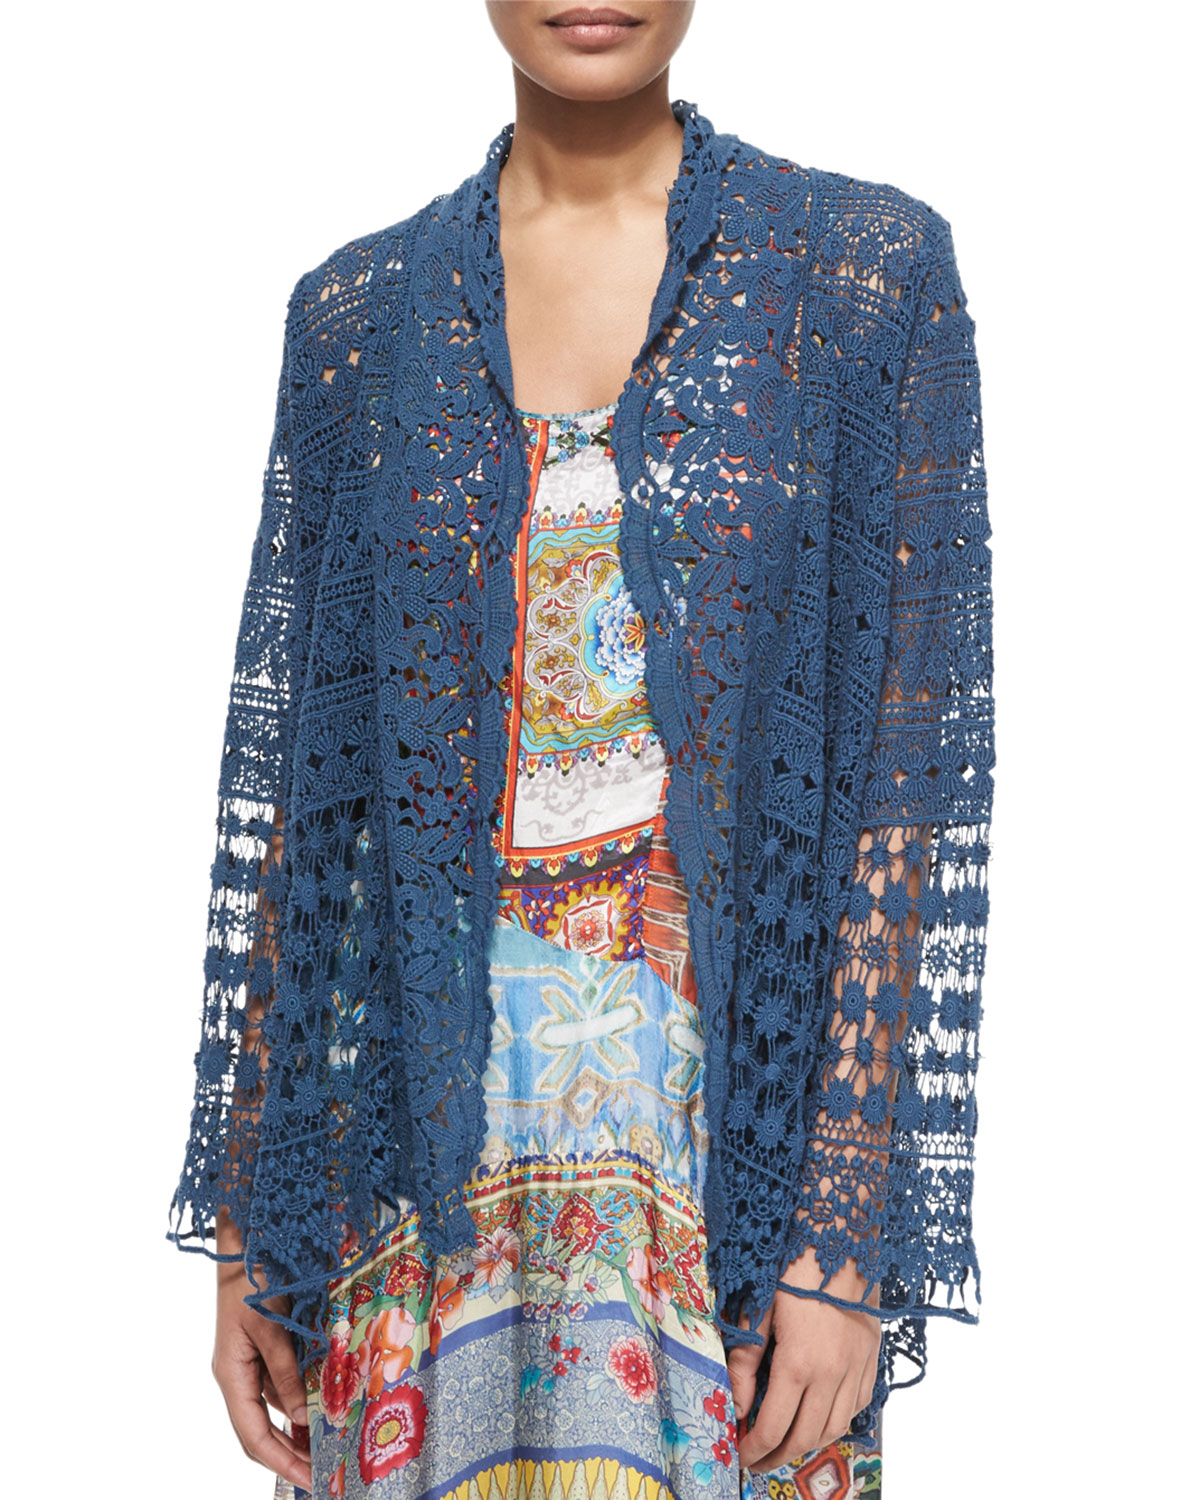 CLSSC SHORT CROCHET JACKET